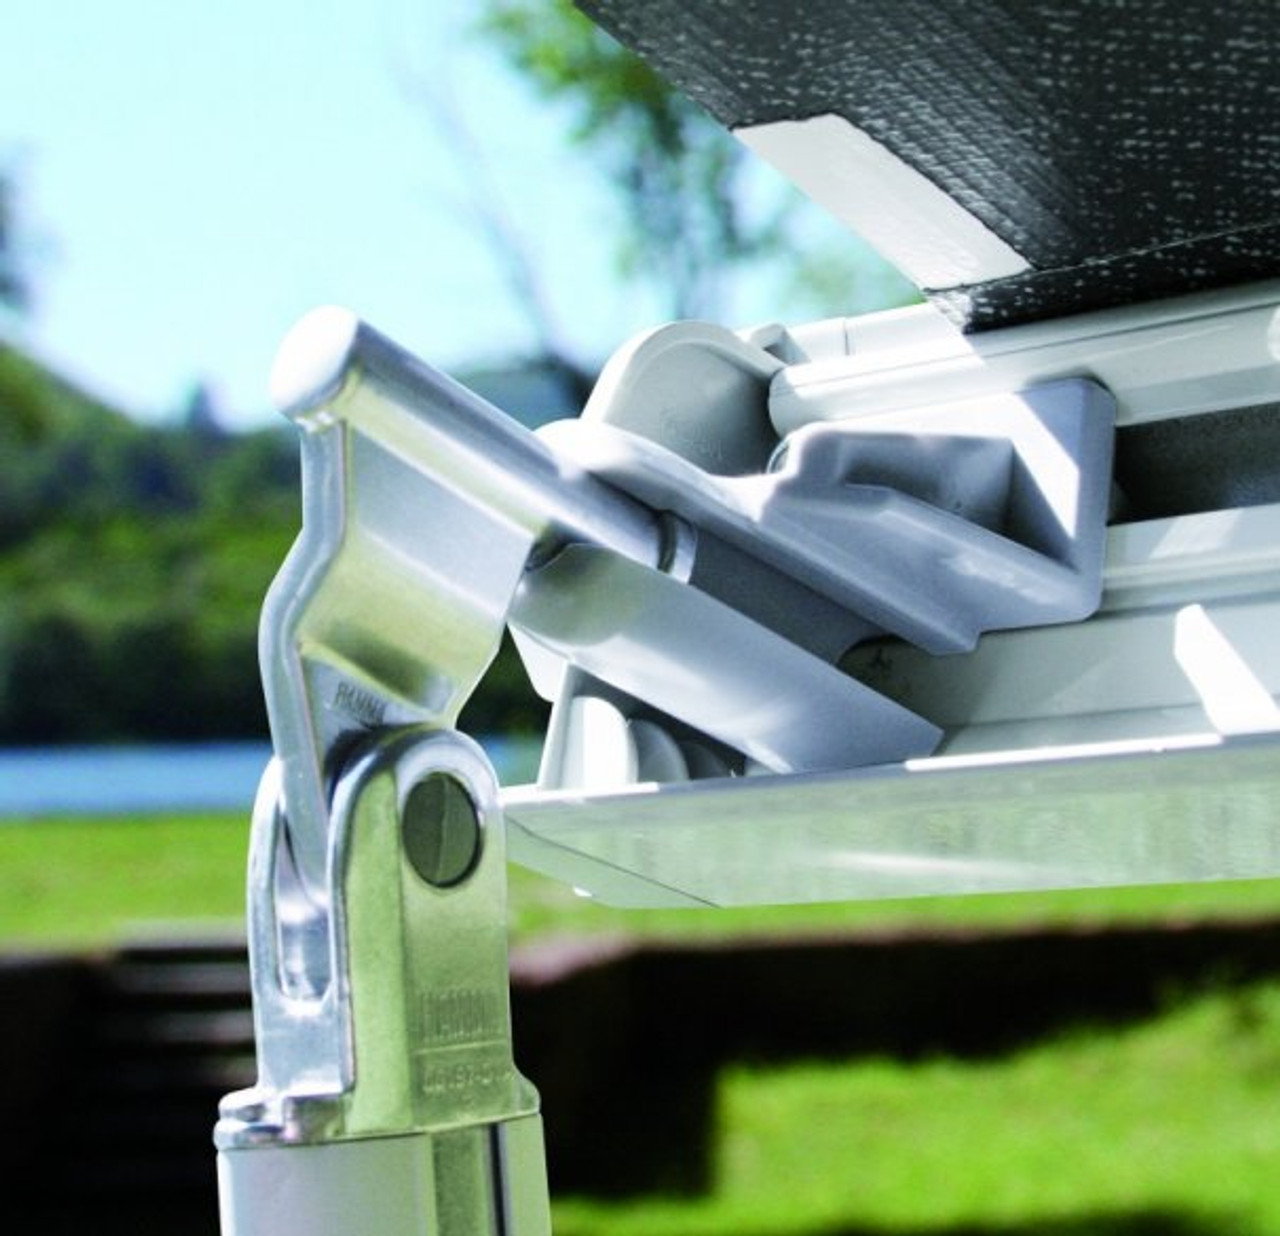 Fiamma F45s comes with reinforced joints and telescopic legs for the adjustement of the lead bar